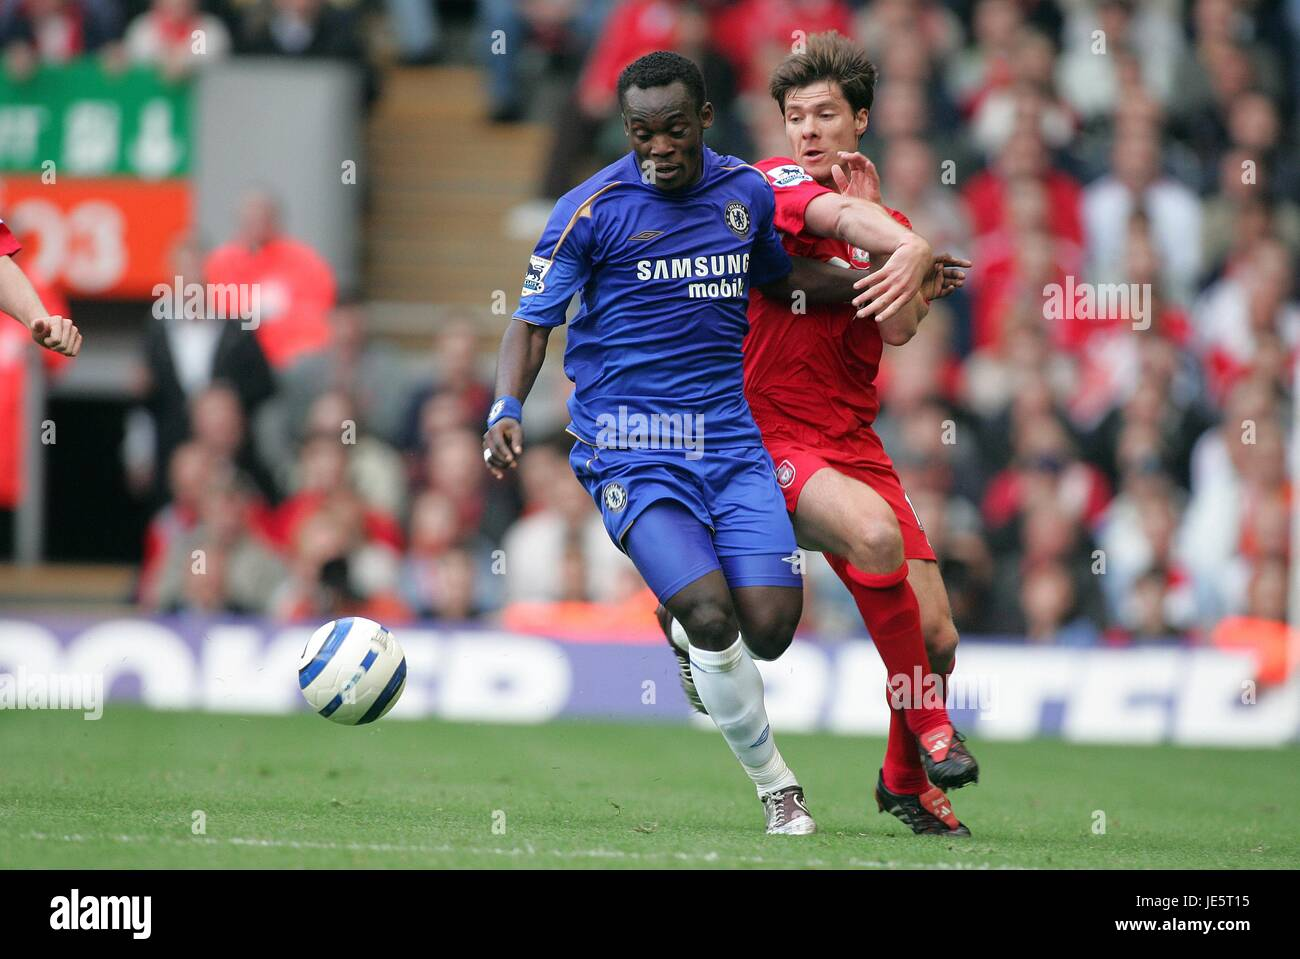 MICHAEL ESSIEN & XABI ALONSO LIVERPOOL V CHELSEA ANFIELD LIVERPOOL